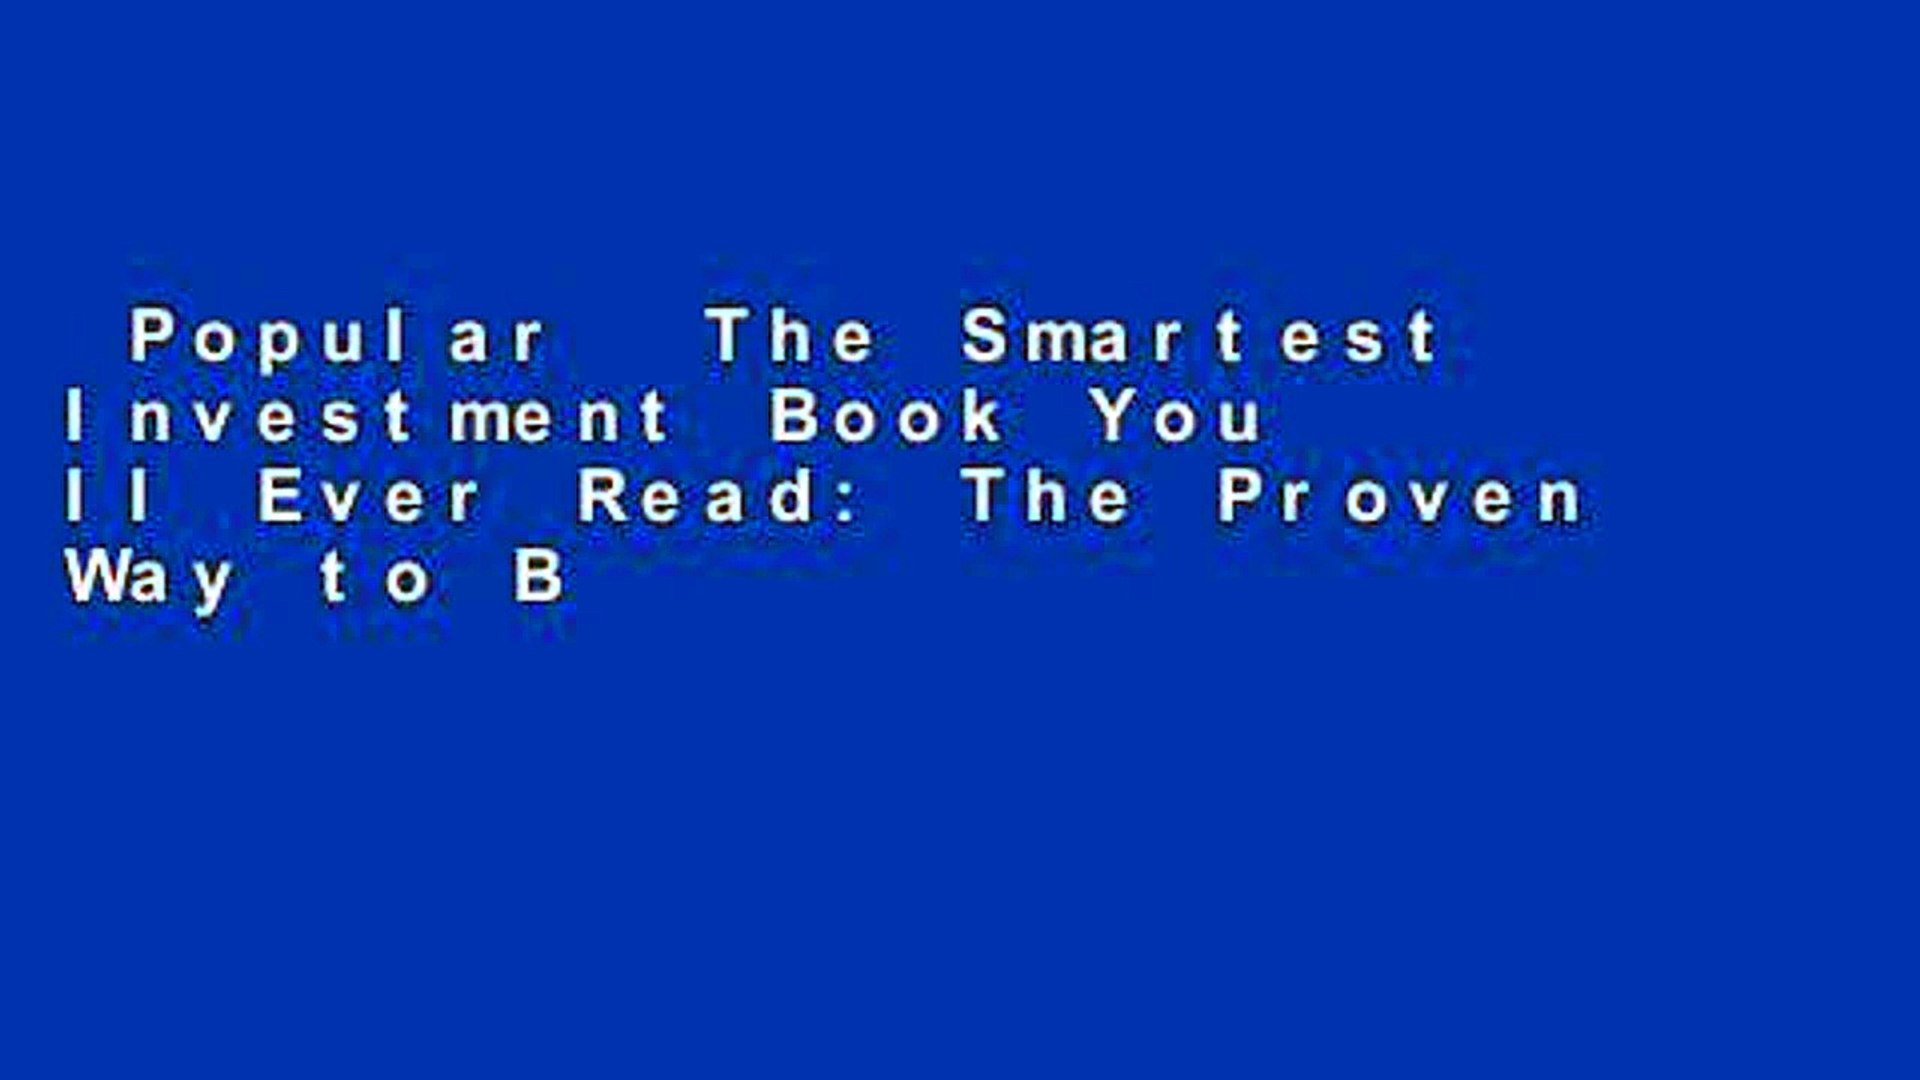 Popular  The Smartest Investment Book You ll Ever Read: The Proven Way to Beat the pros and Take